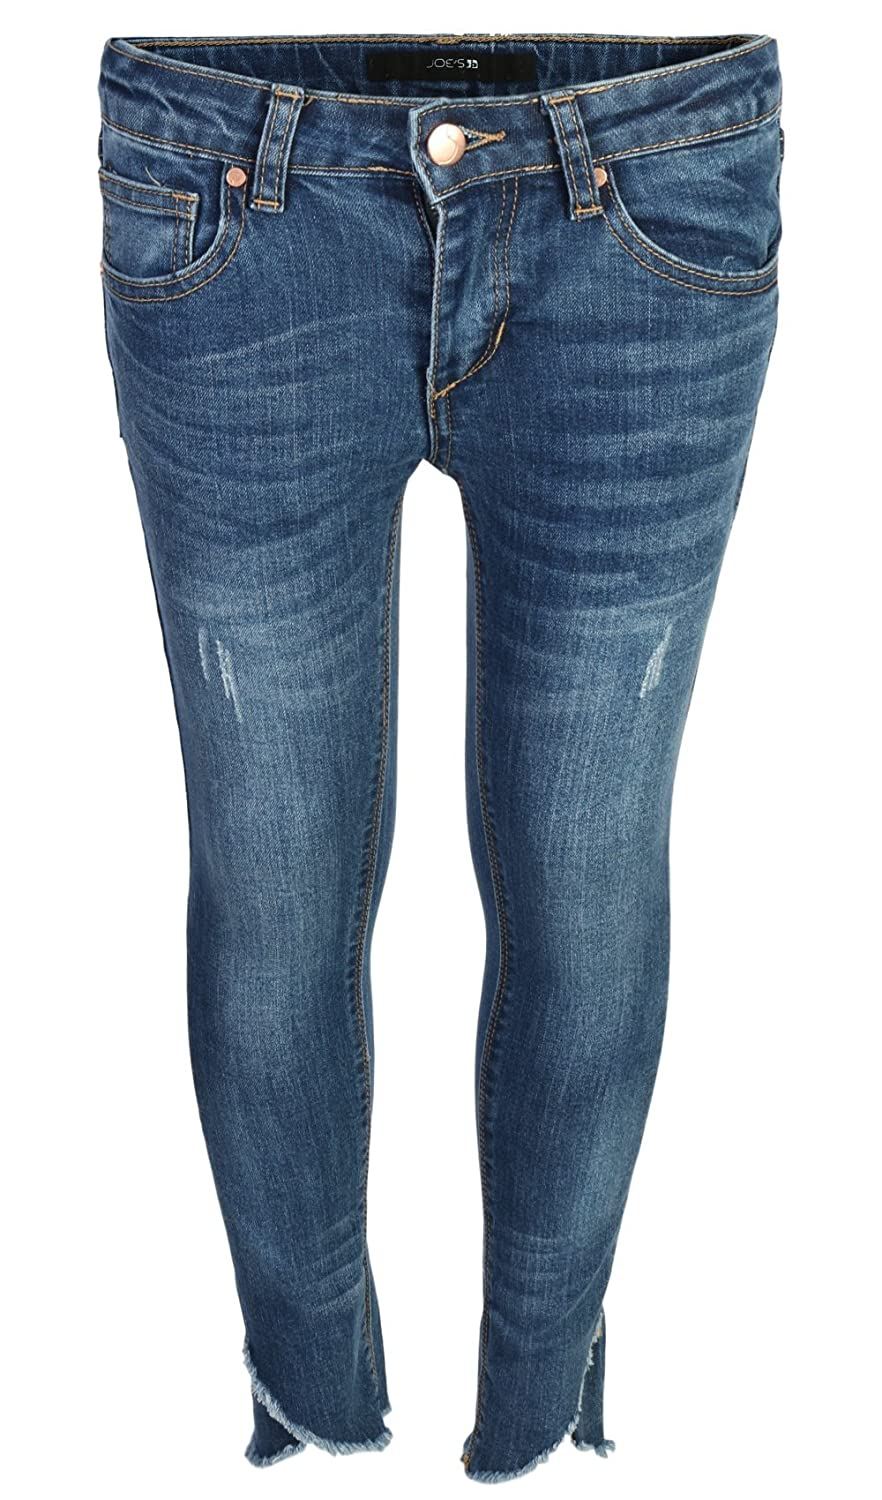 Joe's Jeans Girls Mid Rise Soft Stretch Denim Jean Joe's Jeans